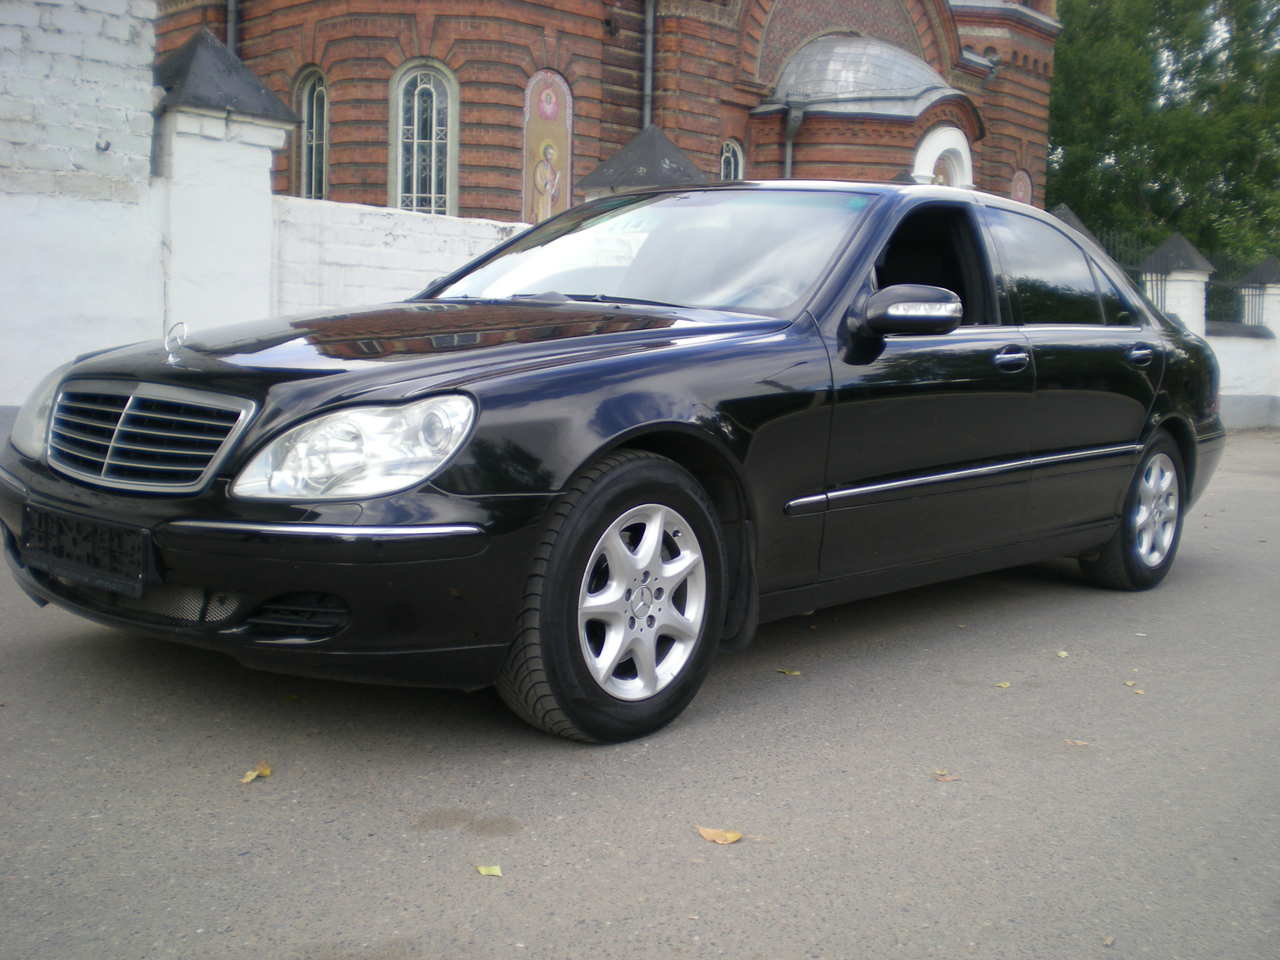 benz l bluetec media class cars line used county plus tronic amg s saloon tyrone mercedes cdi